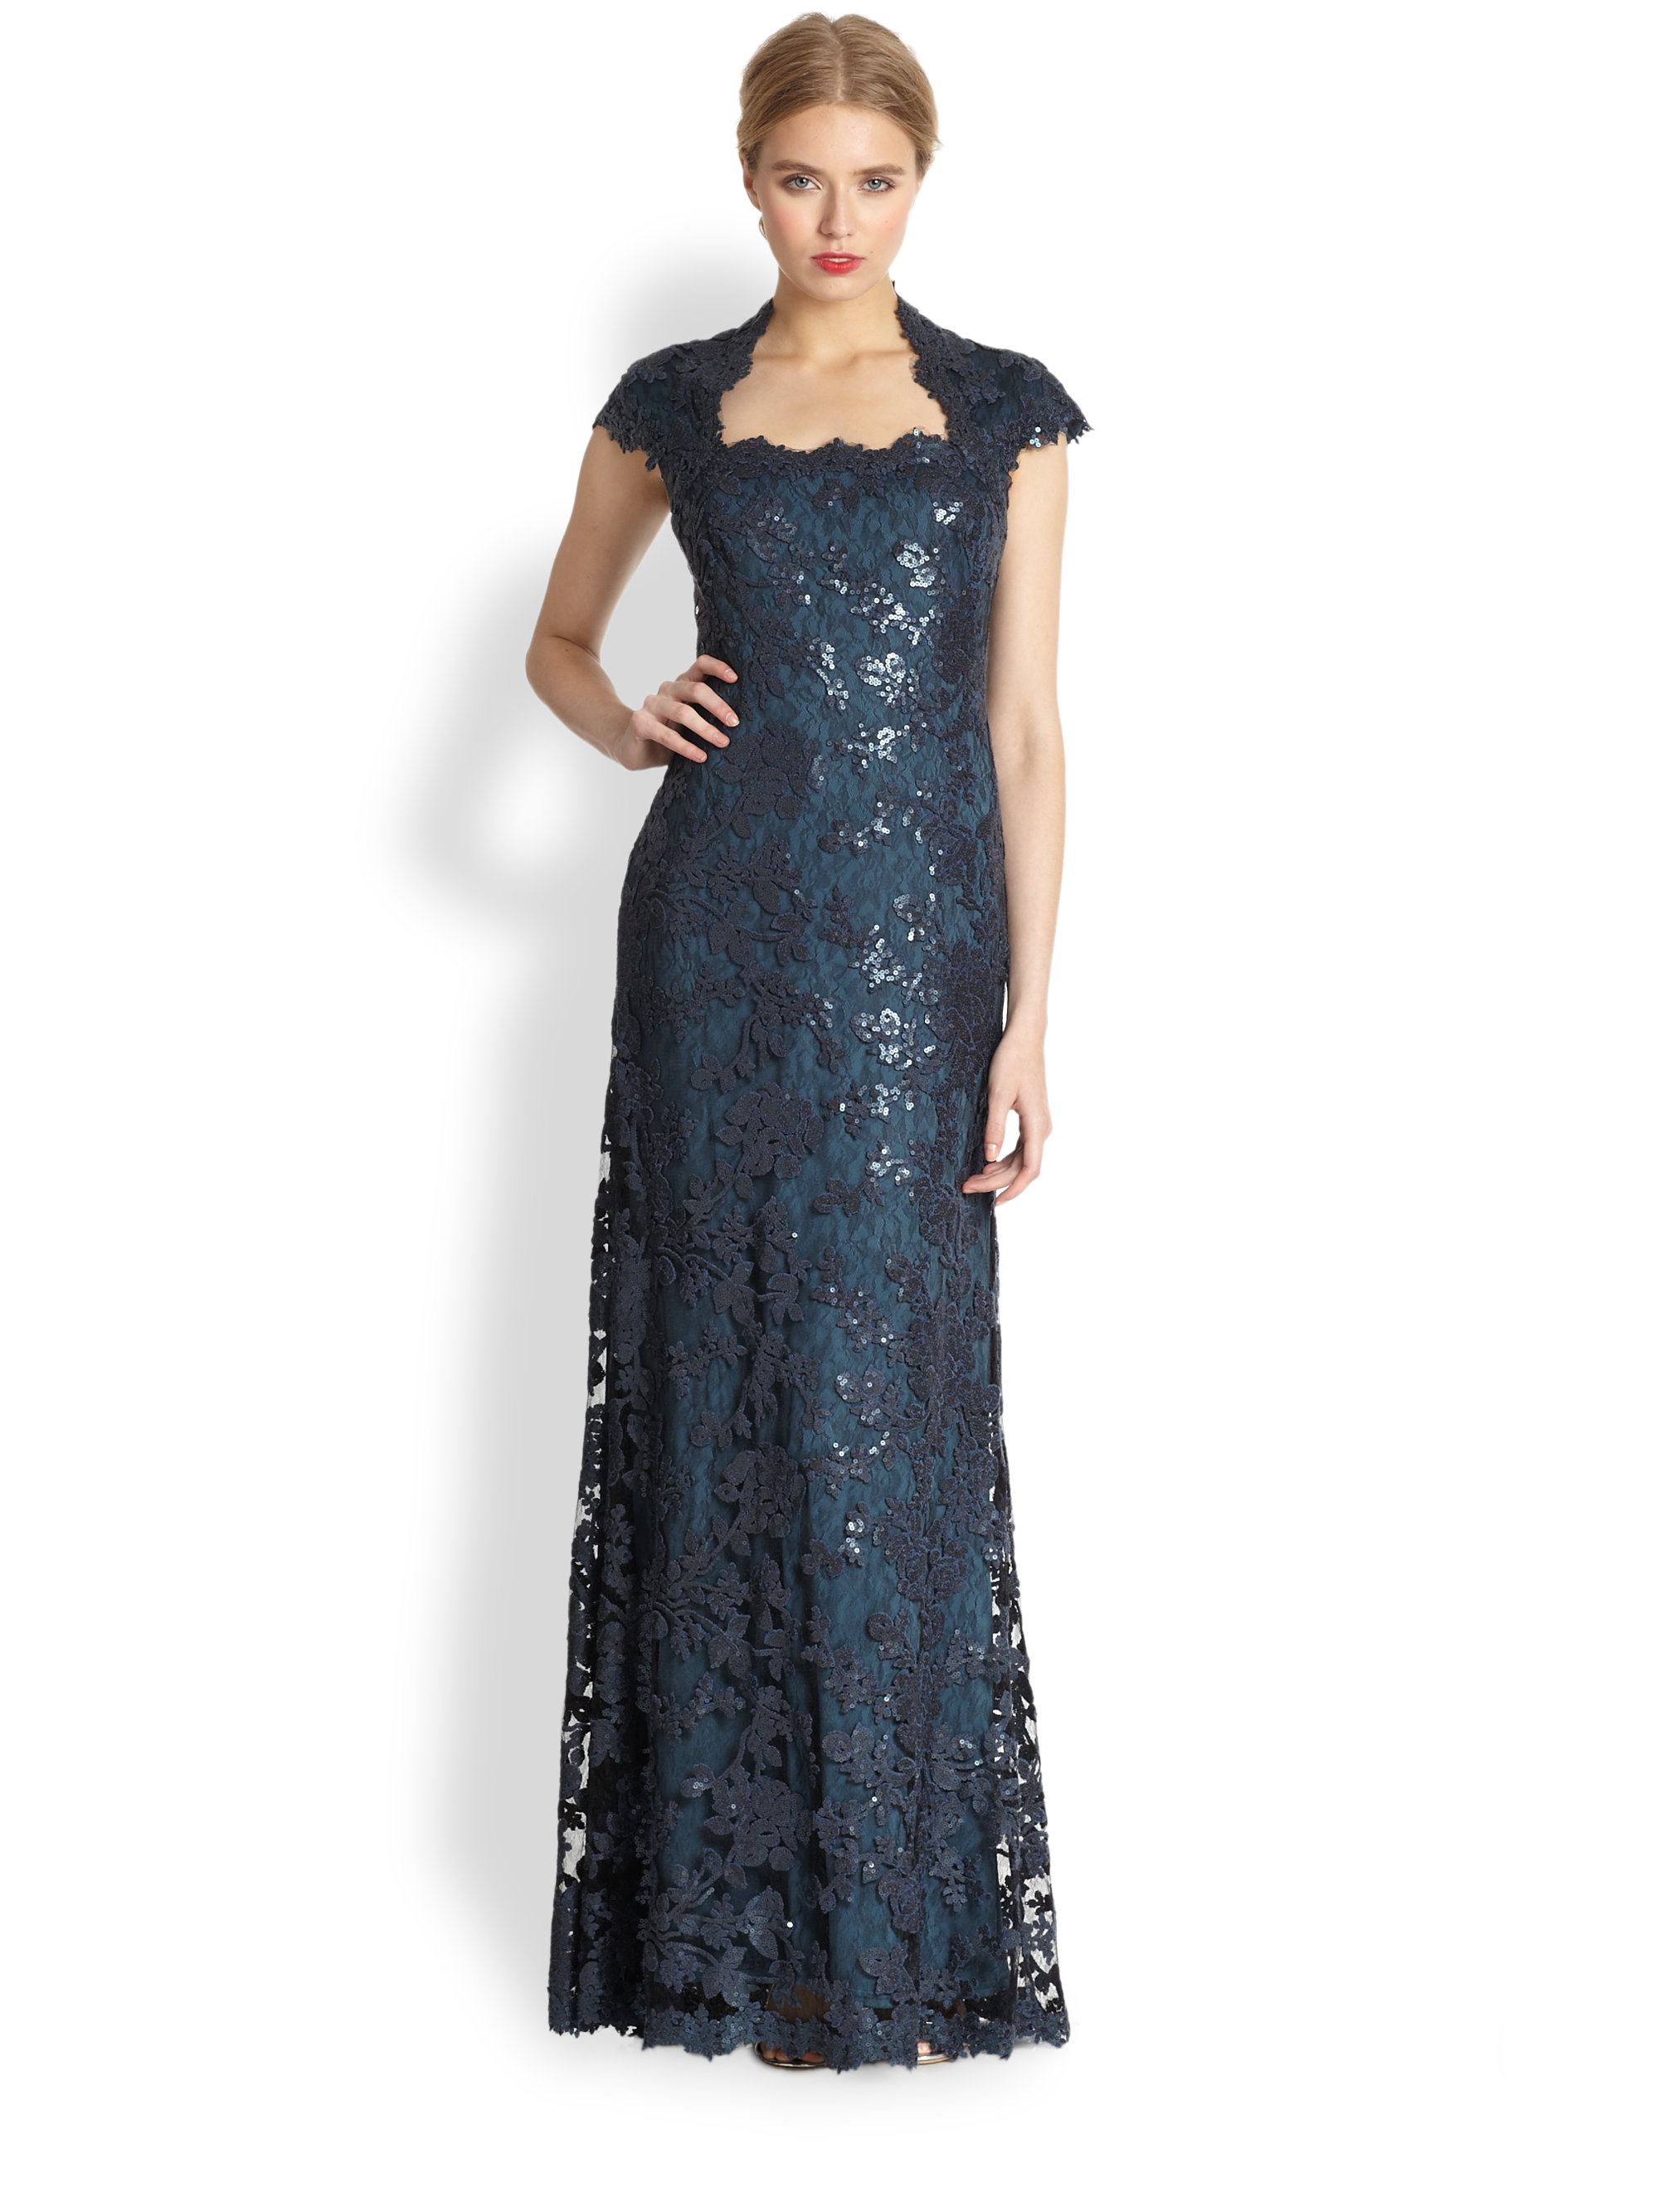 Lyst - Tadashi Shoji Sequin Lace Capsleeve Gown in Blue